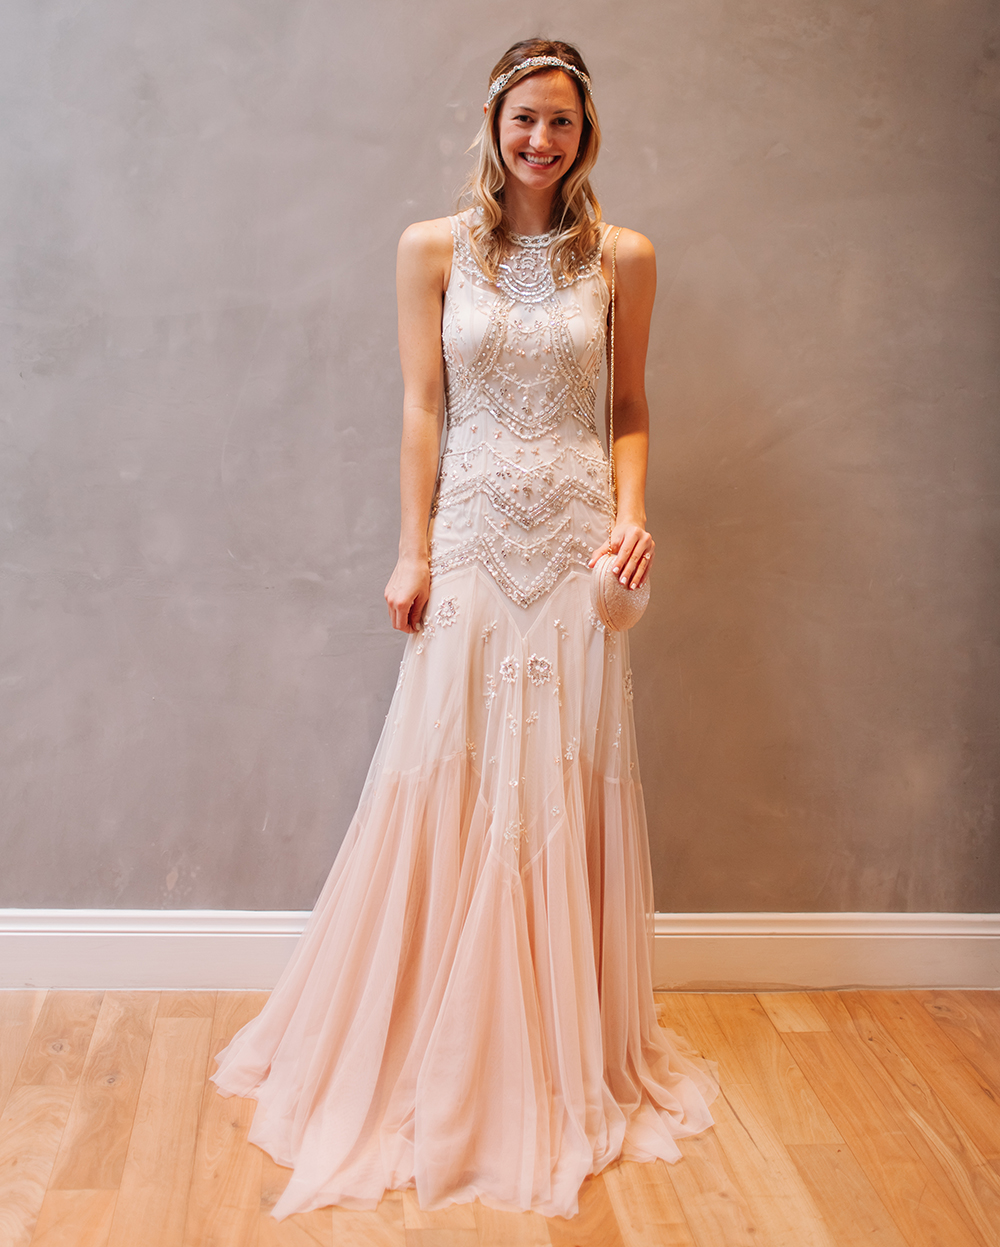 Used Wedding Dresses Houston Texas - Wedding Dress Designers